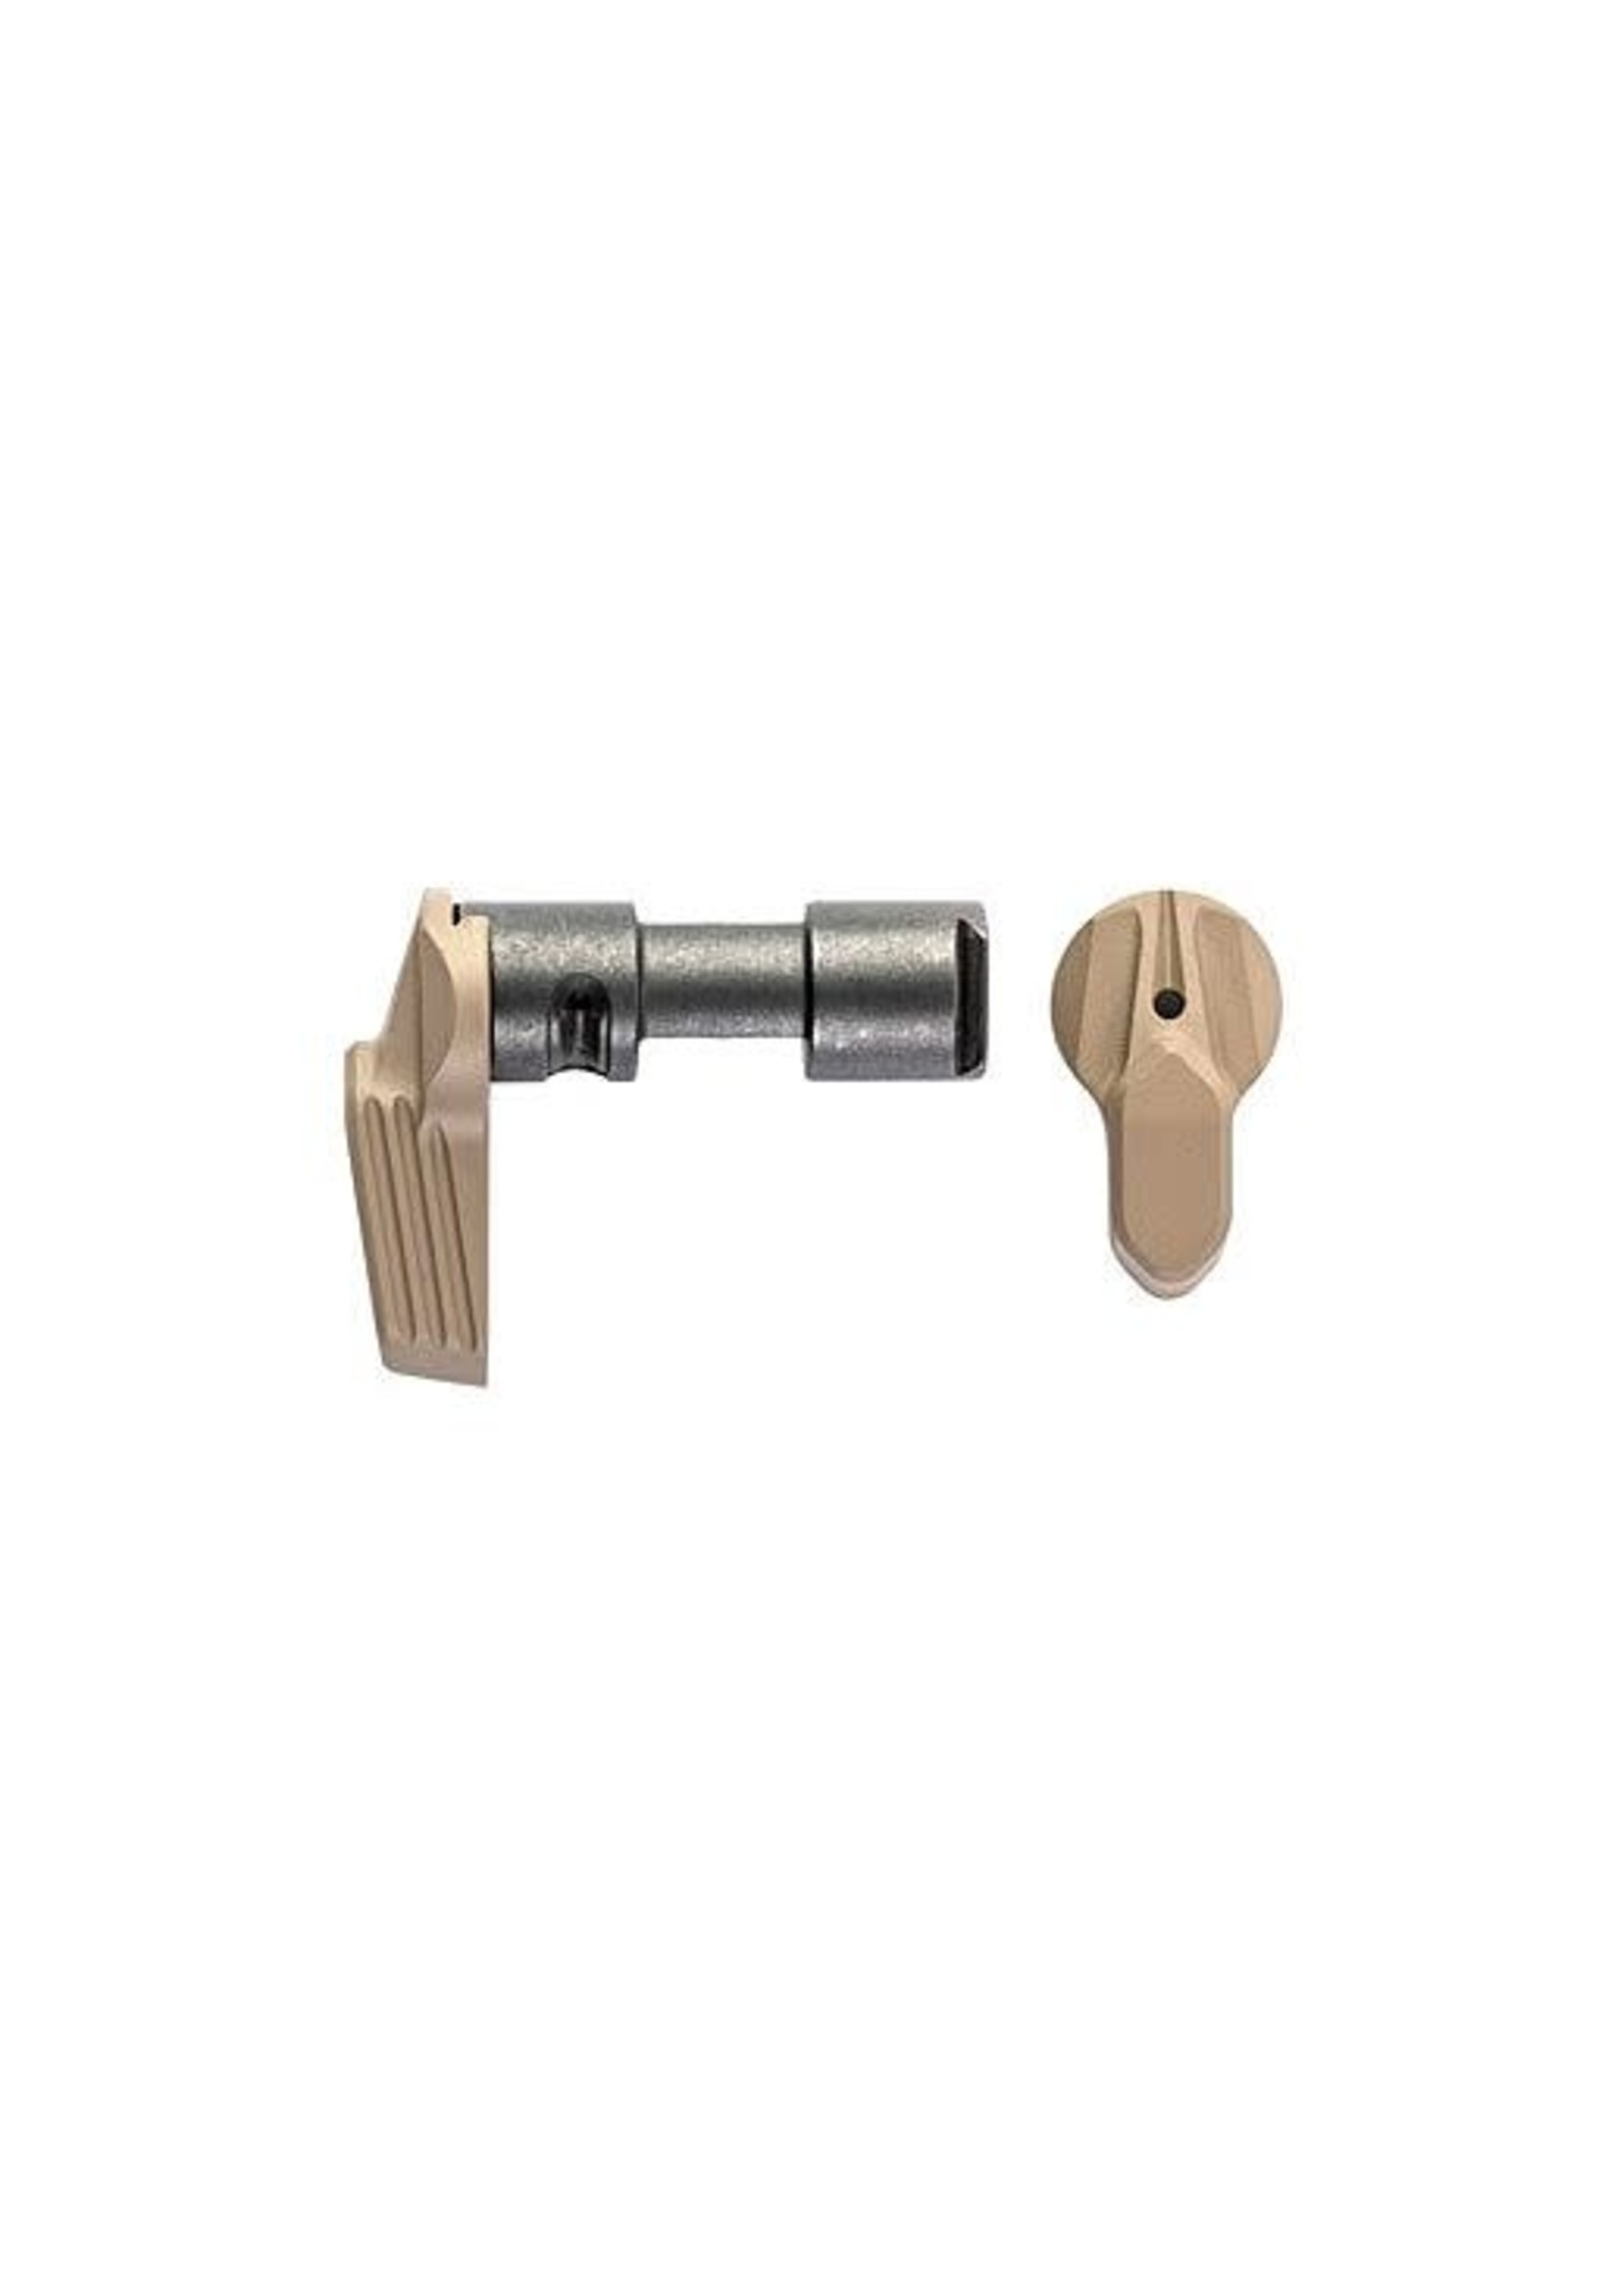 Radian Weapons Radian Weapons Talon Safety Selector 2-Lever, FDE, for AR15